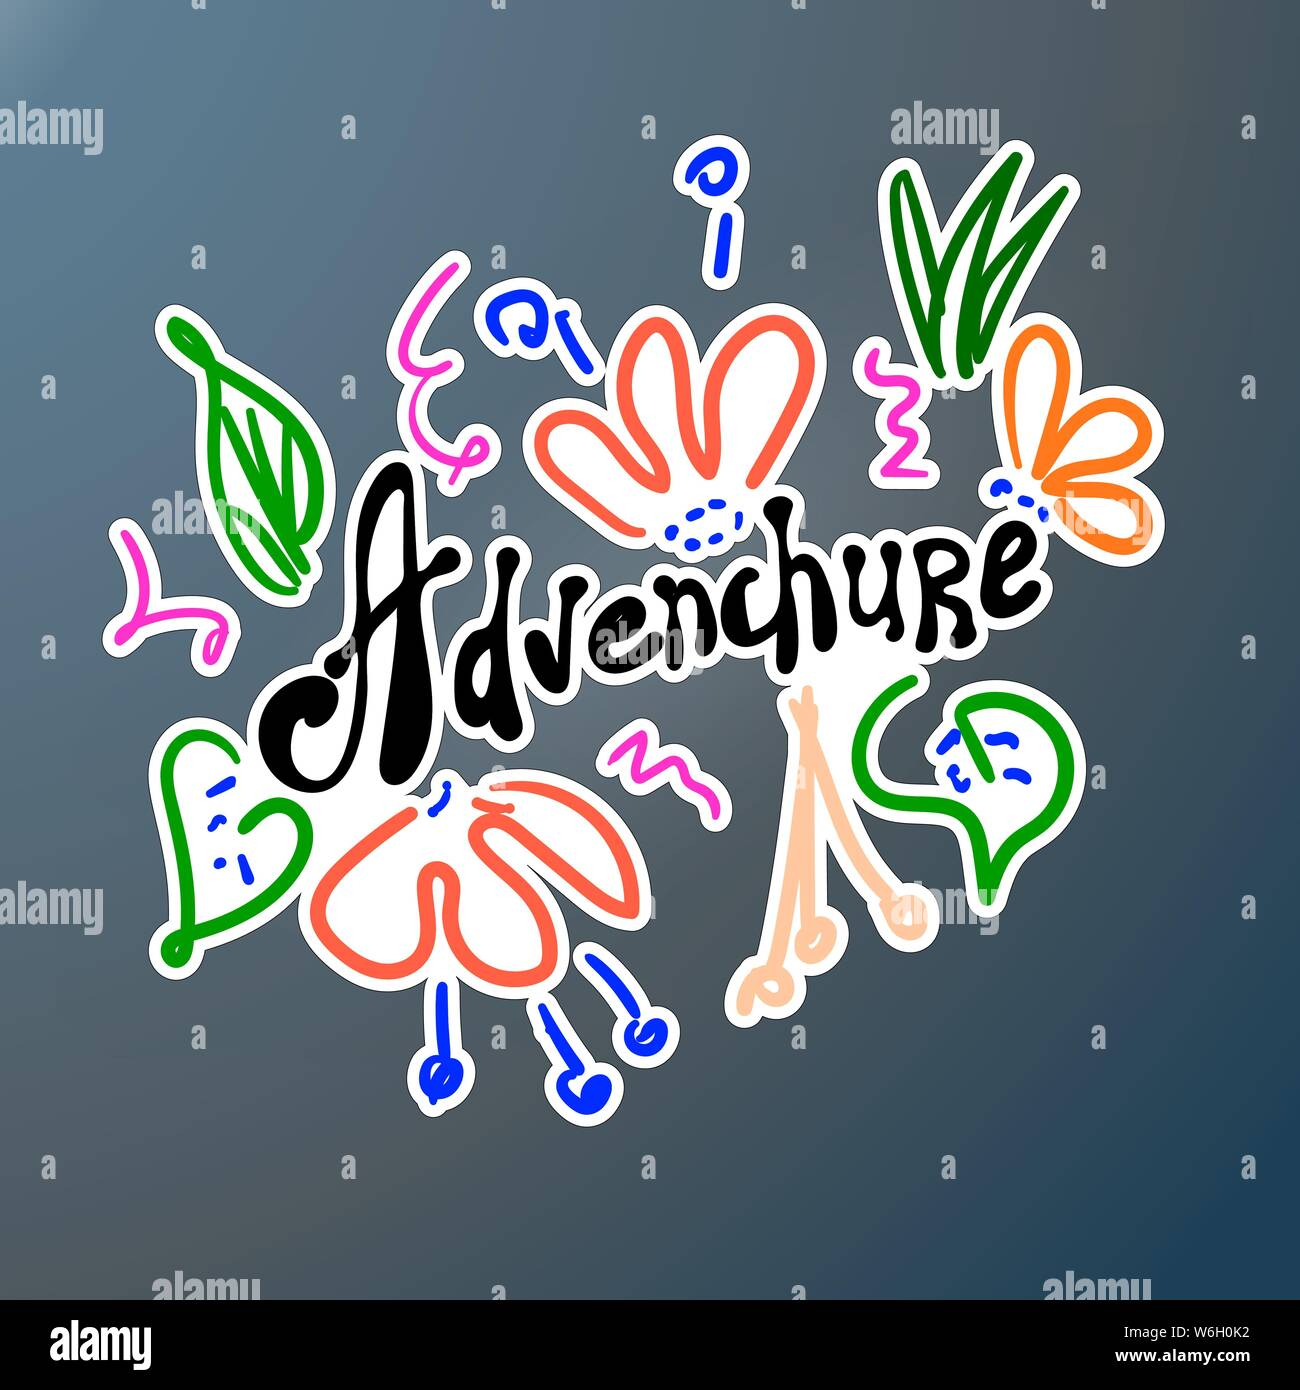 Adventure sticker in doodle style. Funny letters and flowers. Hand calligraphy scribble. Car decal designs. For printing on clothes, creating banner, Stock Vector